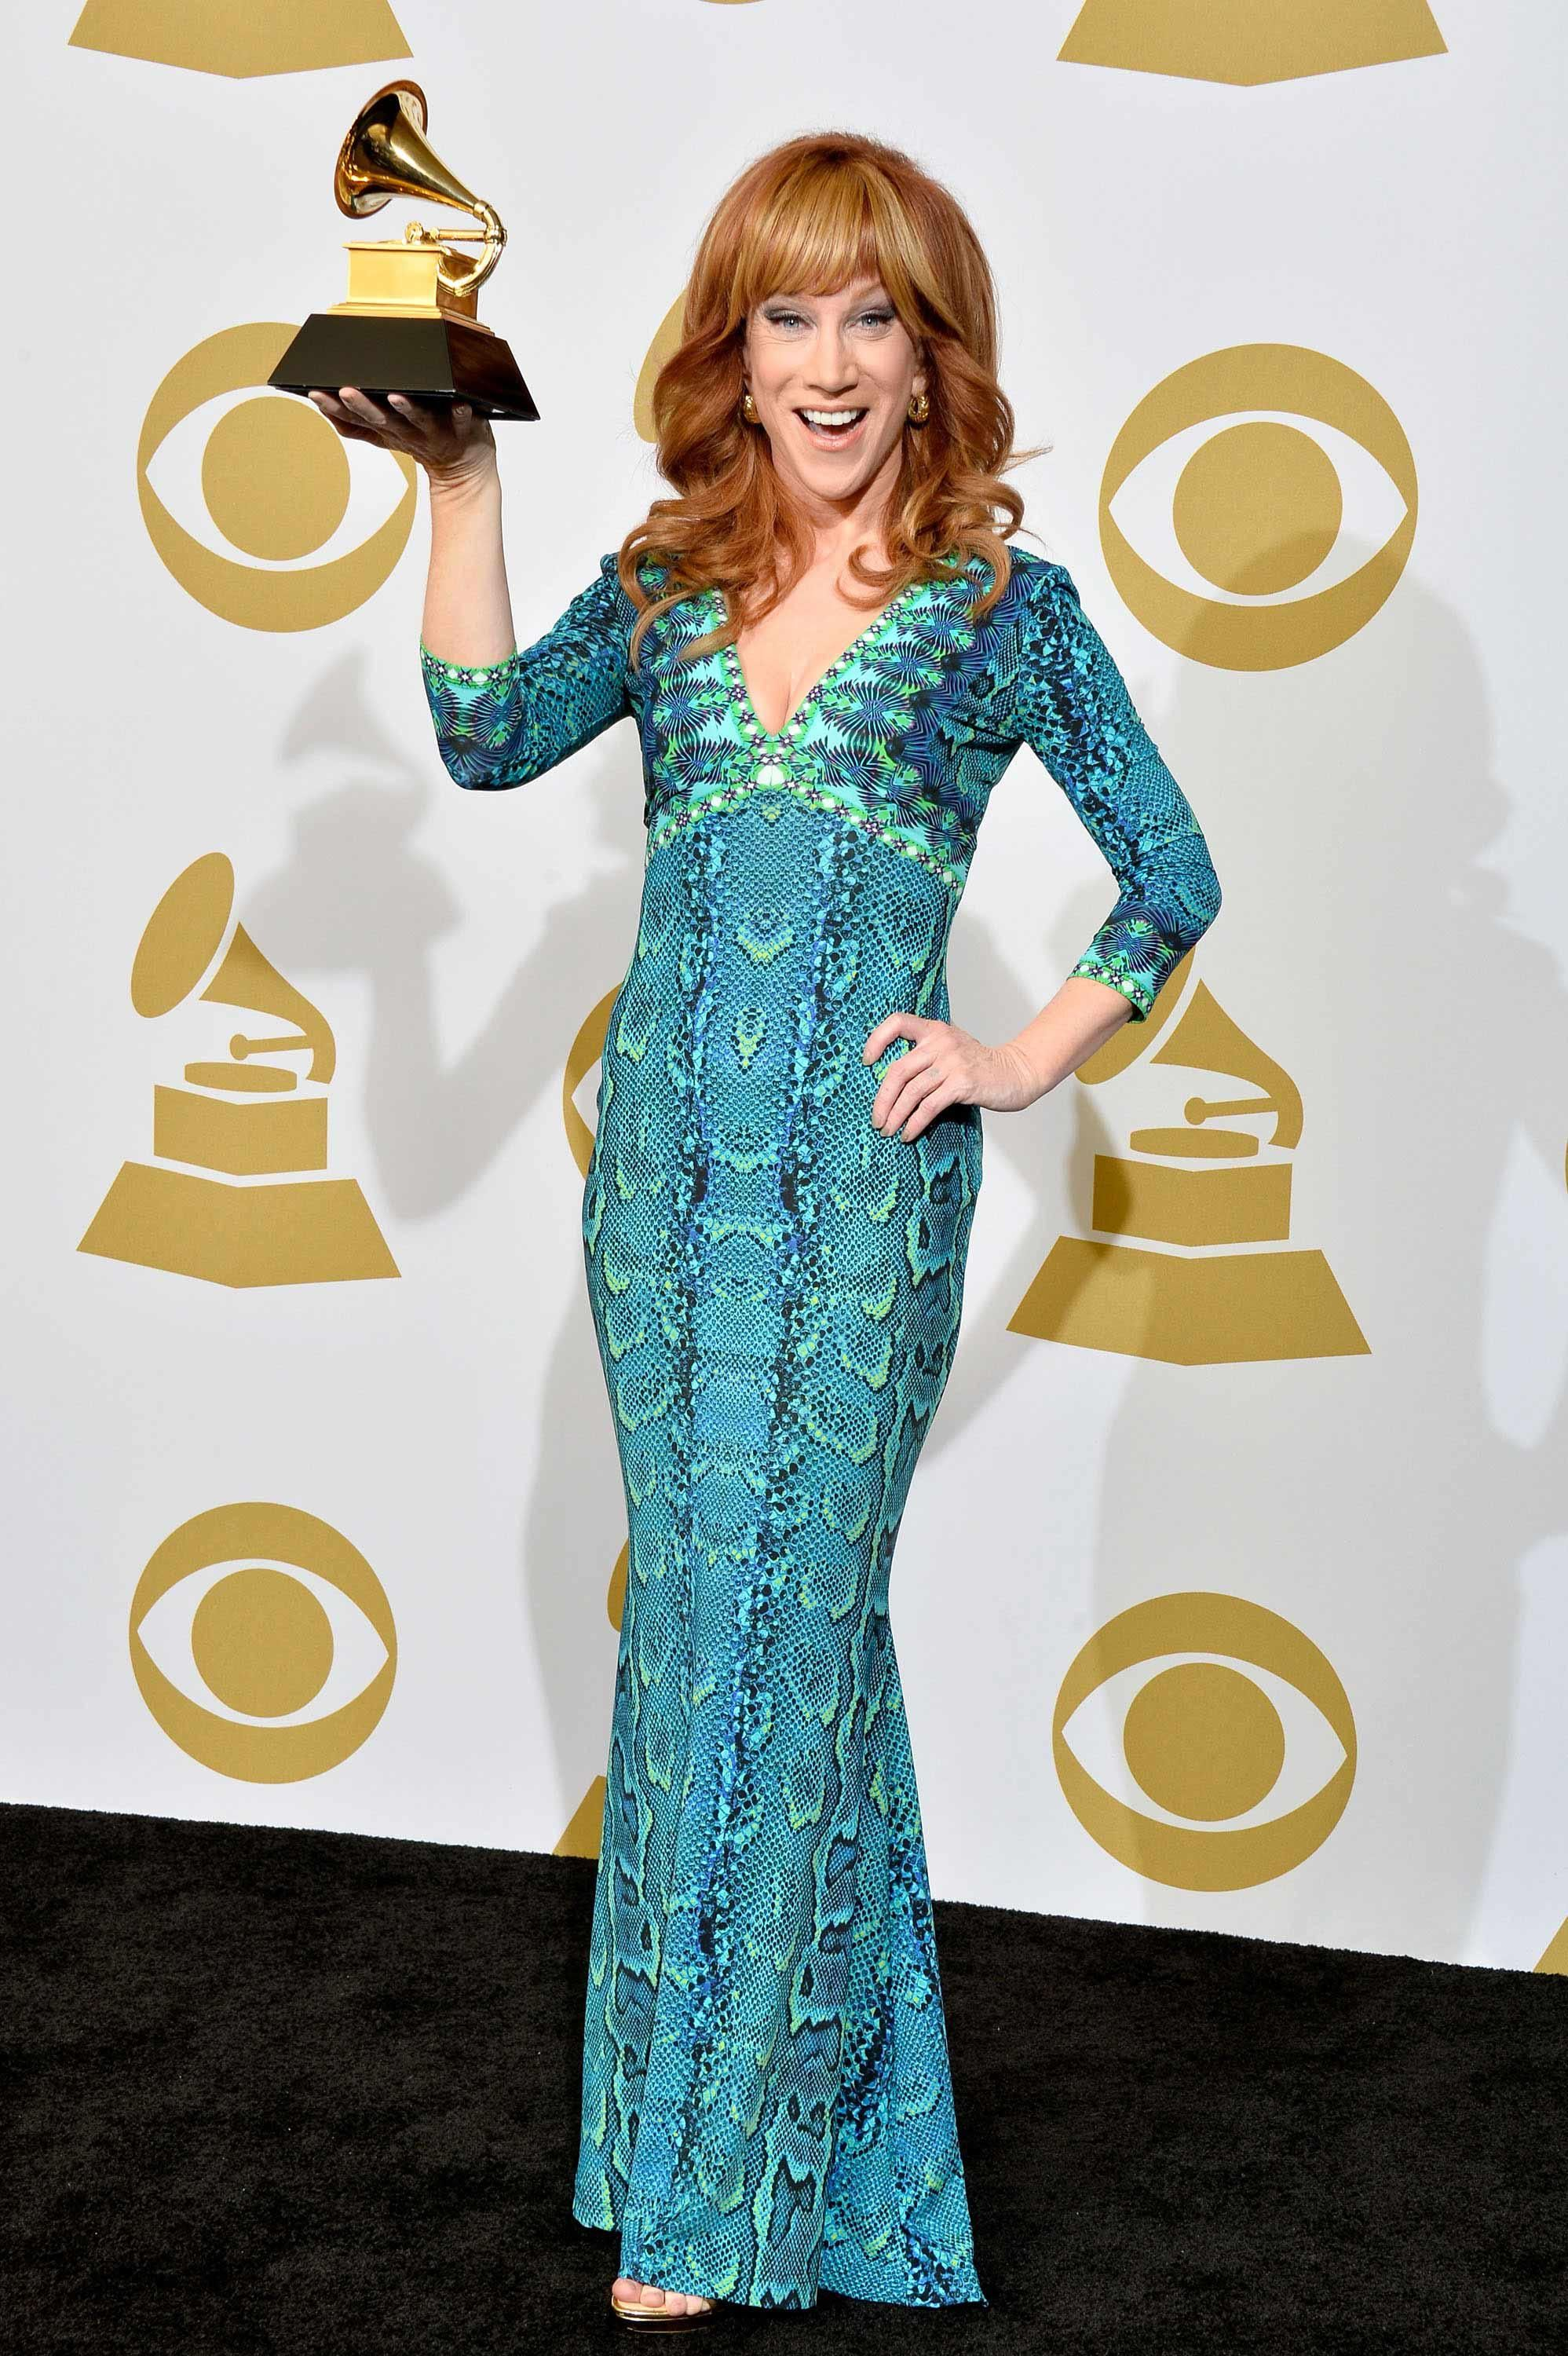 Kathy Griffin holding up her GRAMMY